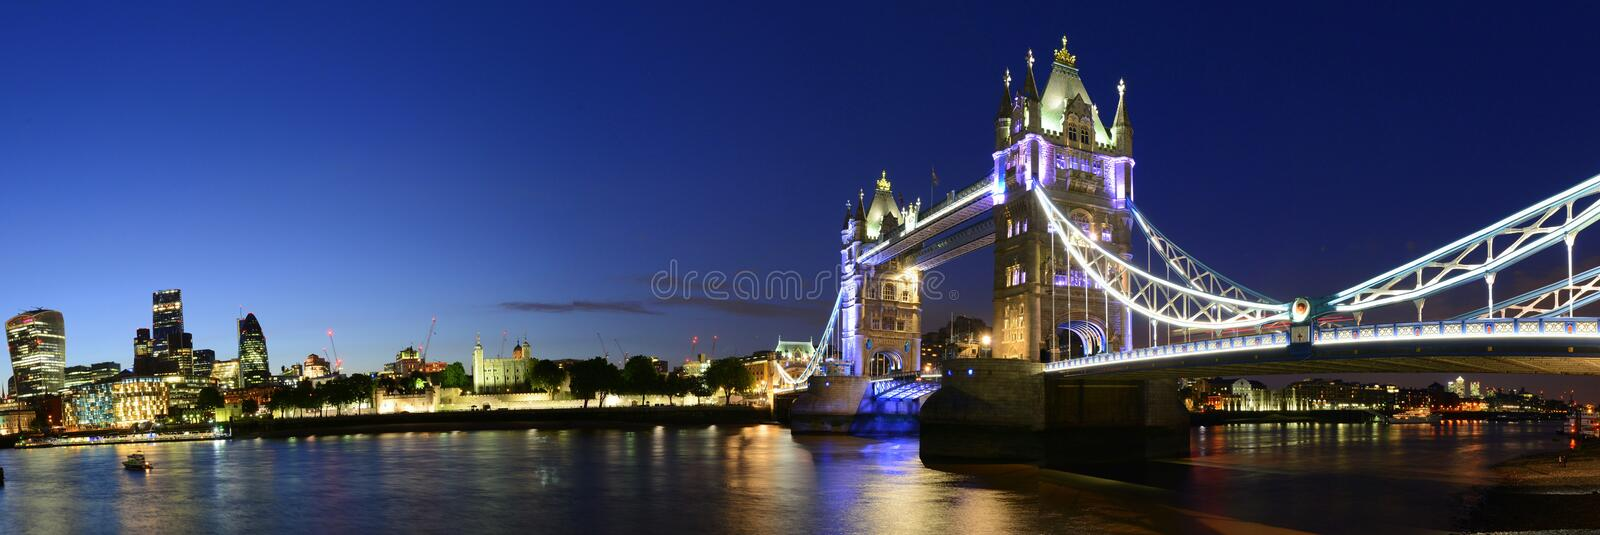 London Bridge over Thames river night panorama, UK royalty free stock photo